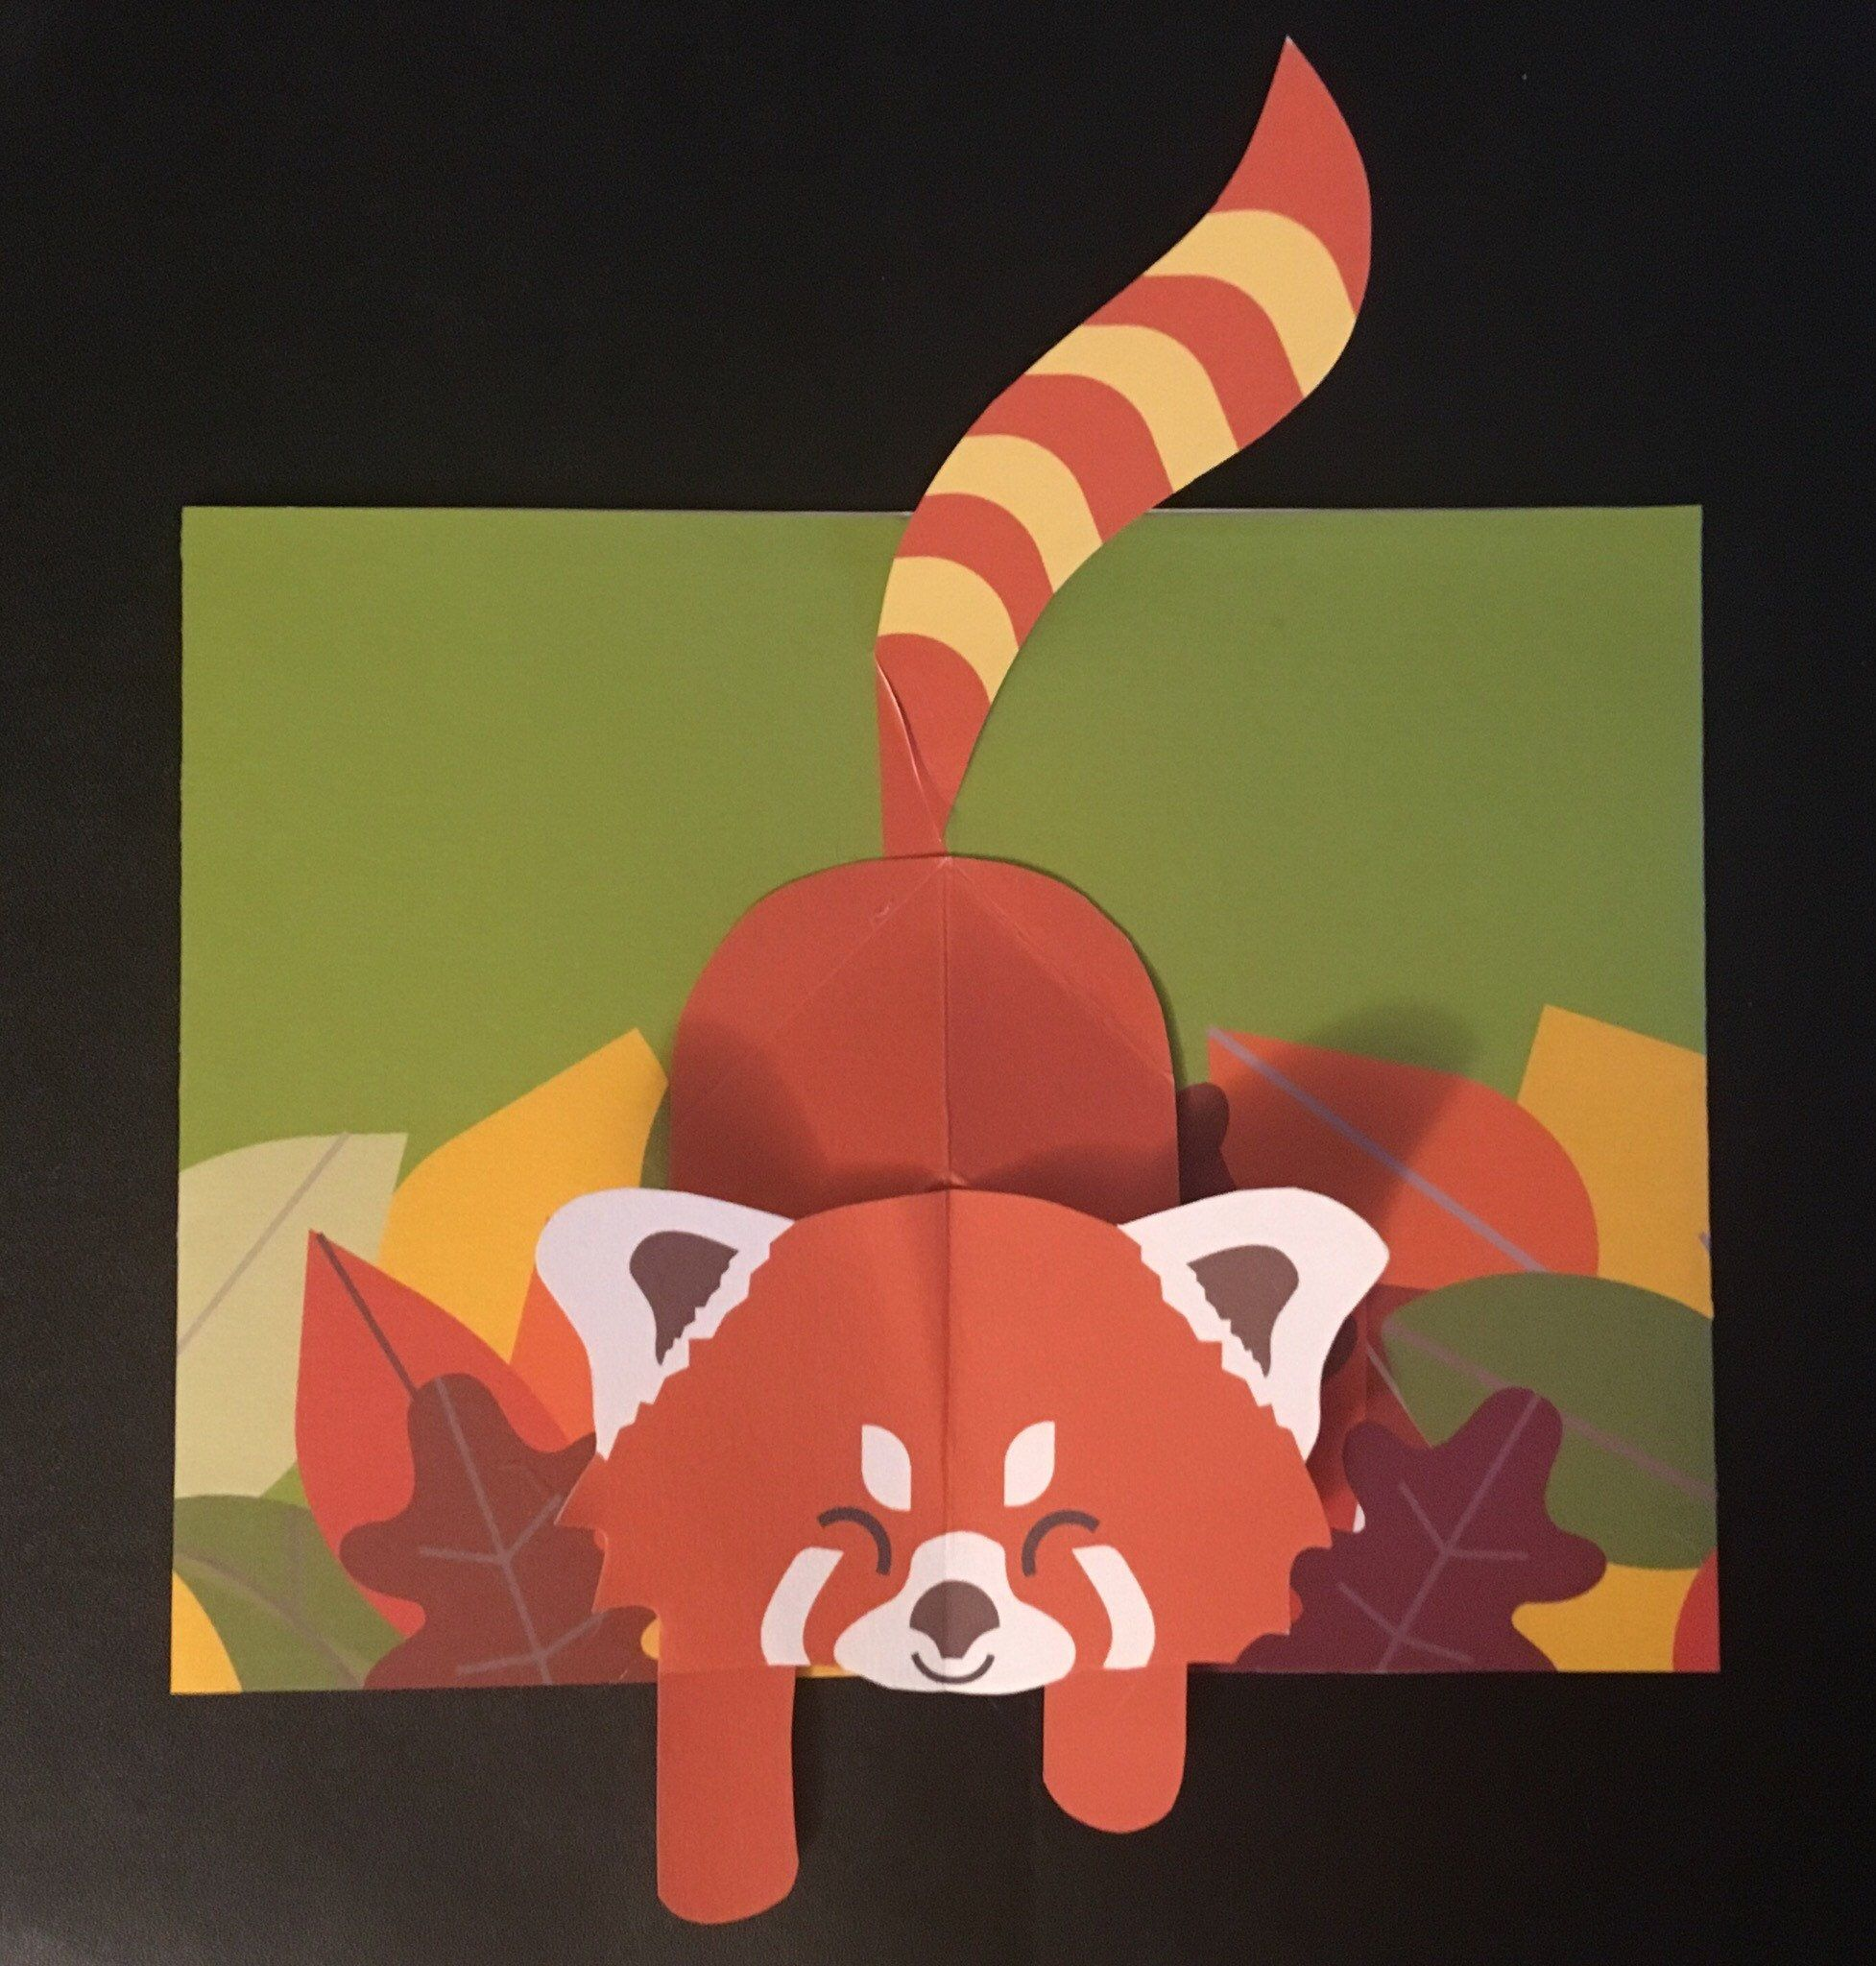 Pop Up 3d Red Panda Greeting Card Mother S Day Card Etsy Panda Card Pop Up Art Pop Up Cards